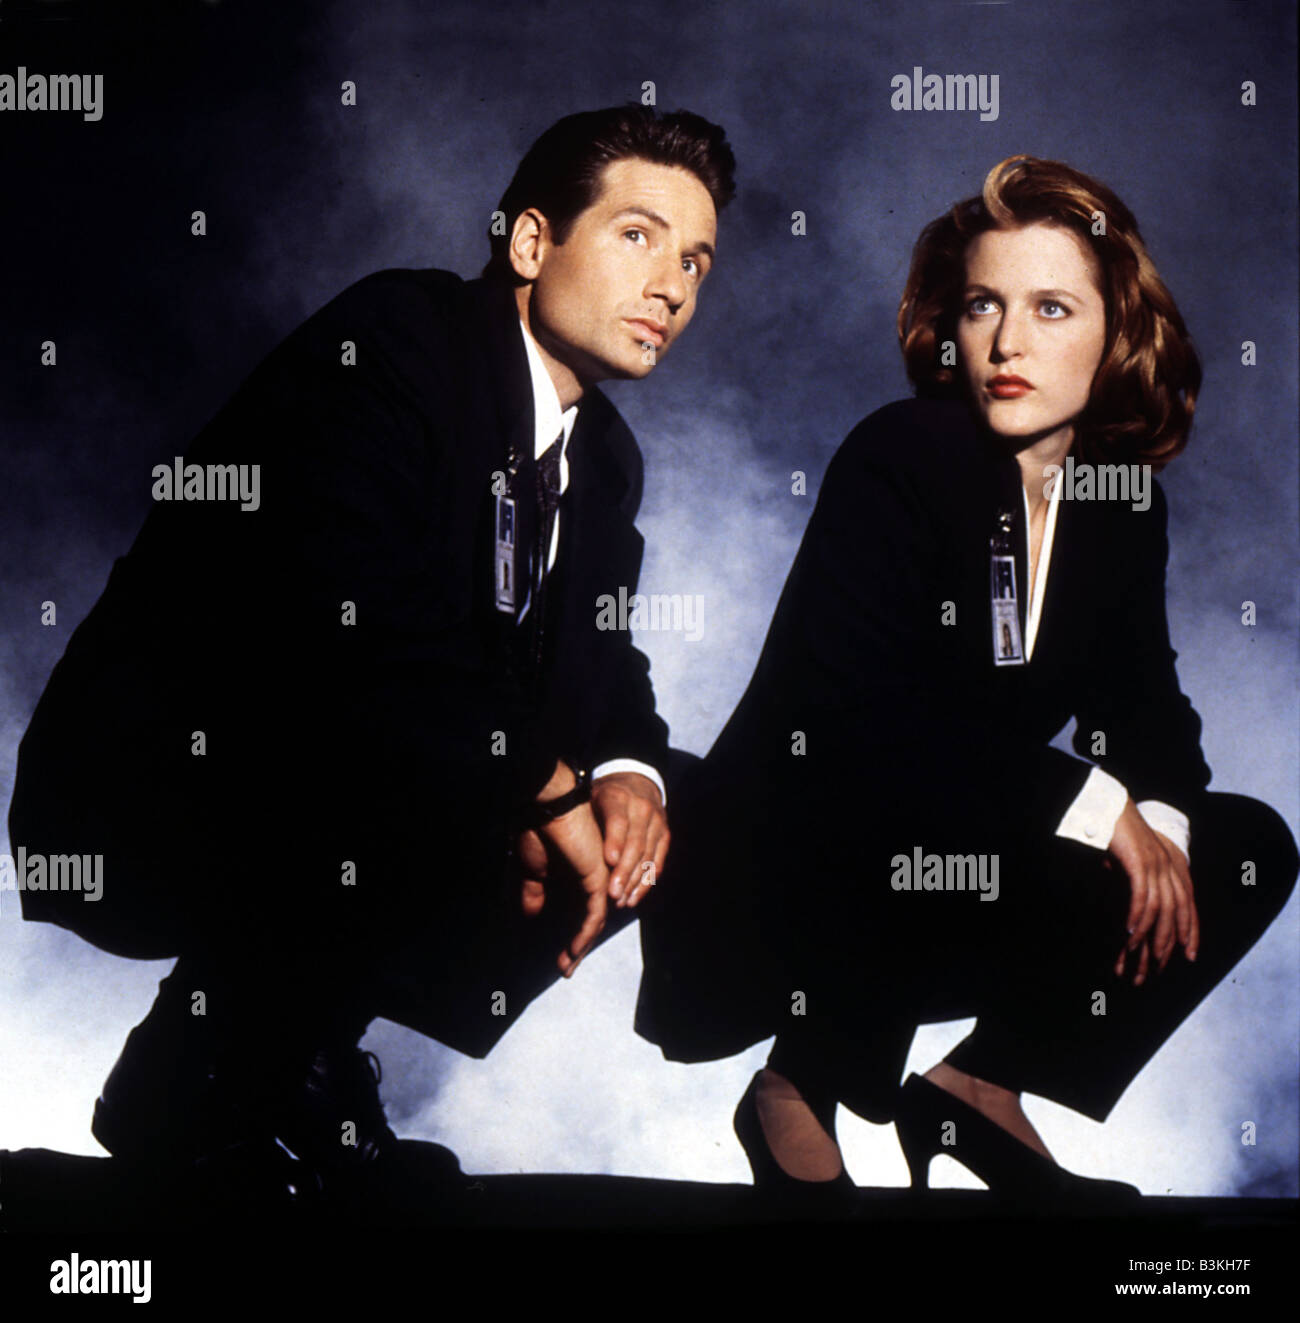 X FILES  US TV series 1993 to 2002 with David Duchovny and Gillian Anderson Stock Photo